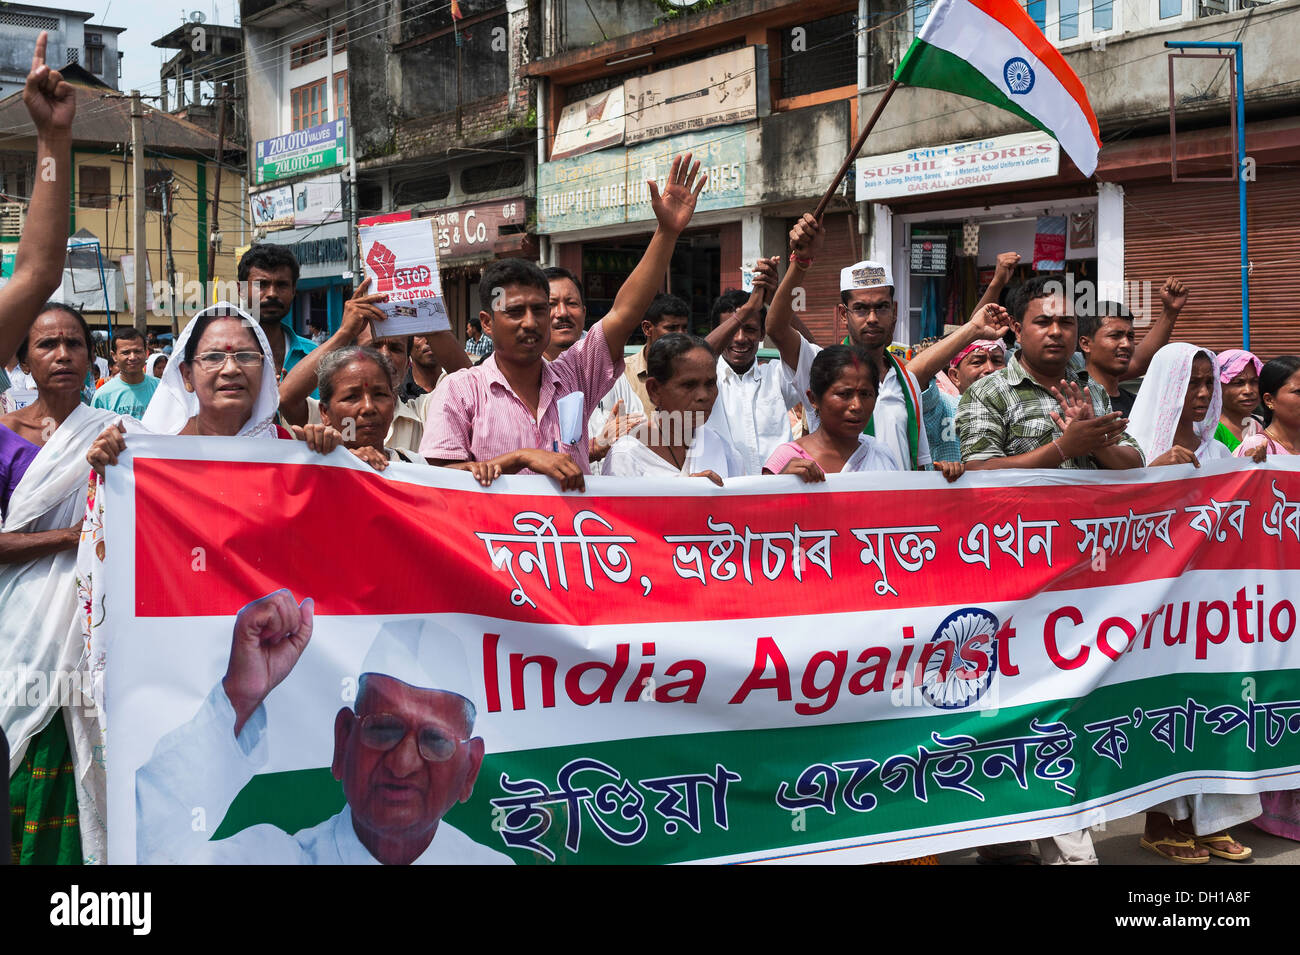 Demonstrators in support of Anna Hazare, MP,  wave banner against corruption in India along street in Jorhat, Assam, India. - Stock Image